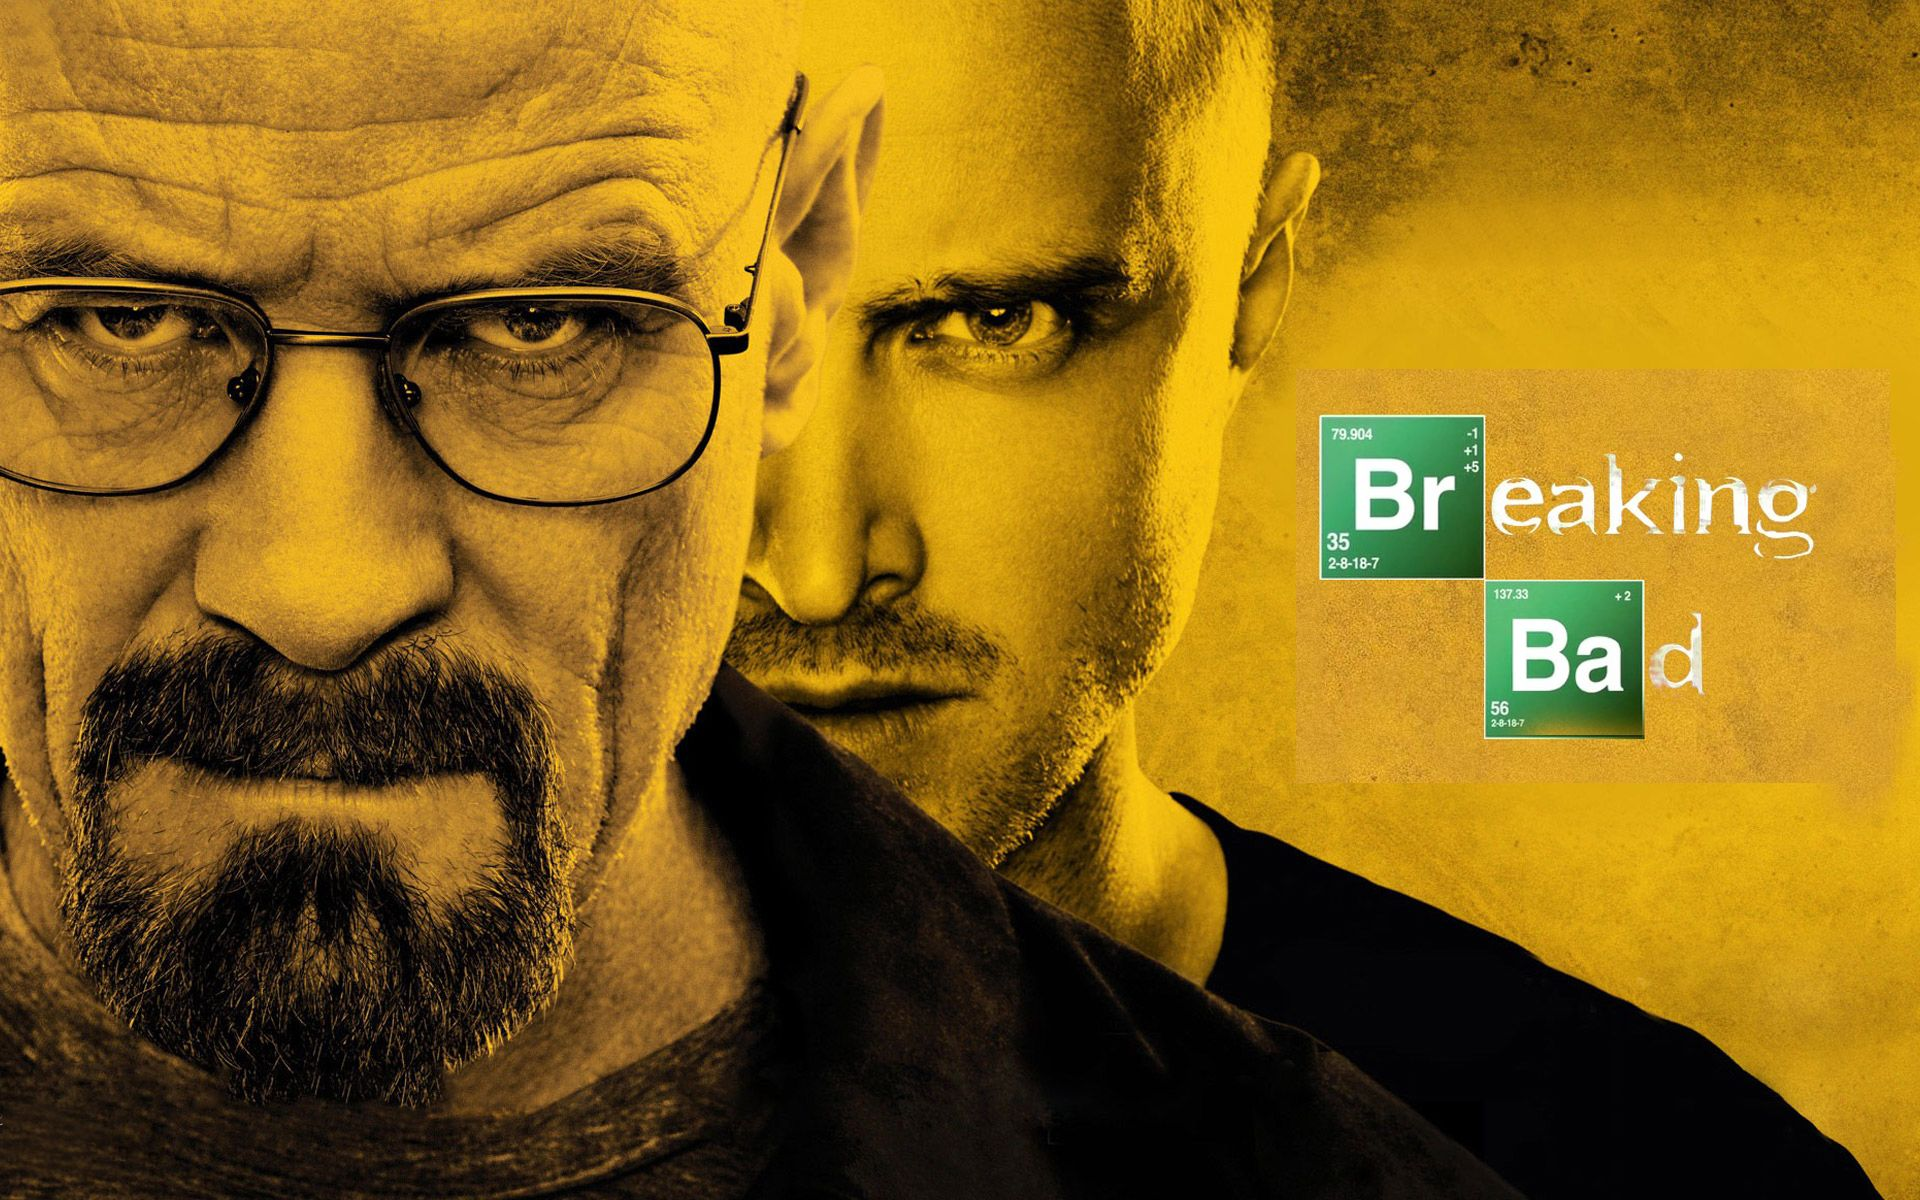 BREAKING BAD CINEFOLLIA